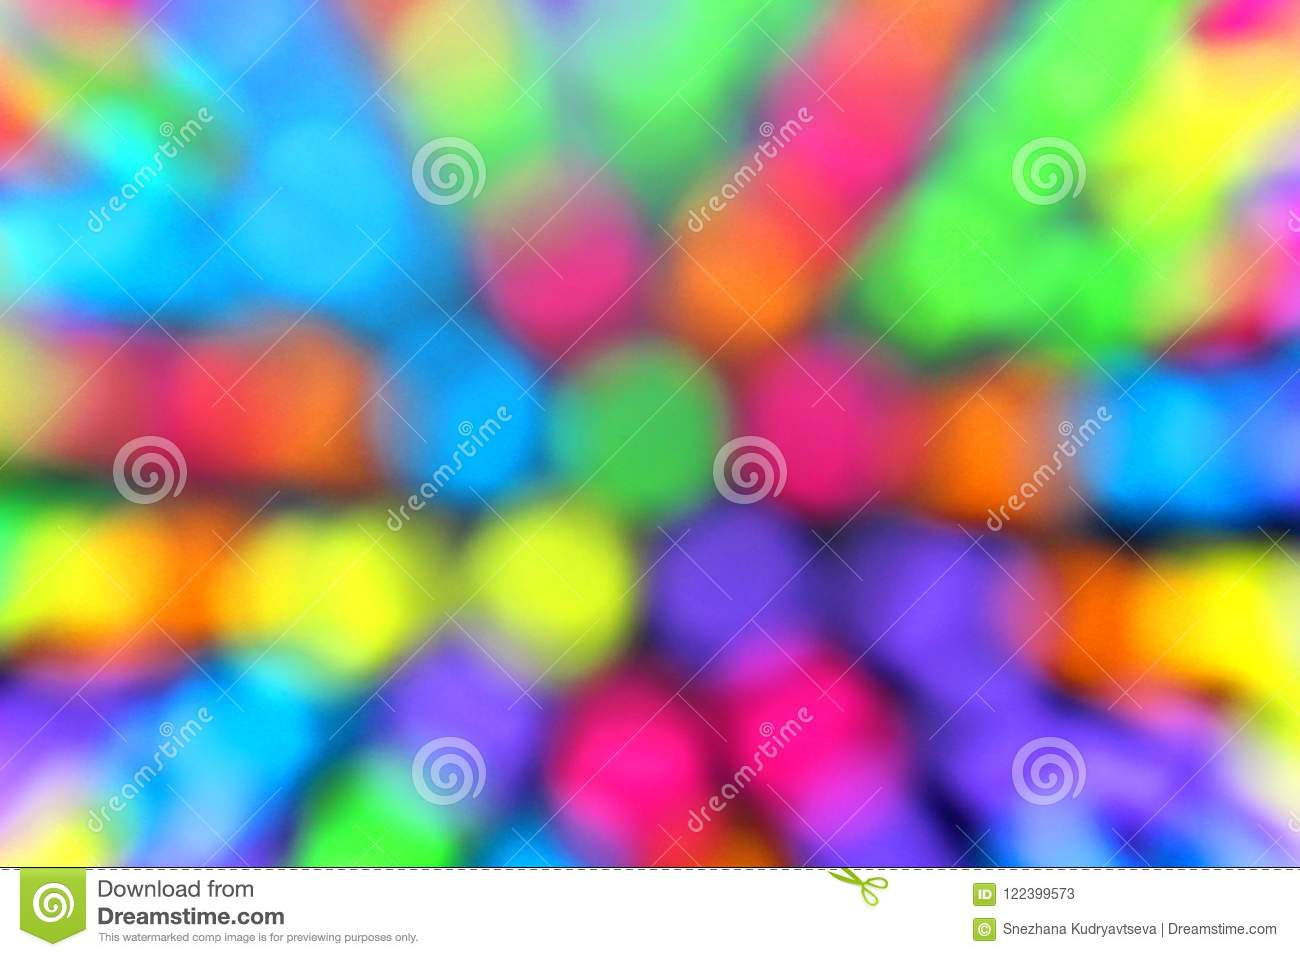 Texture Multicolored Circles Blurred Background Bright